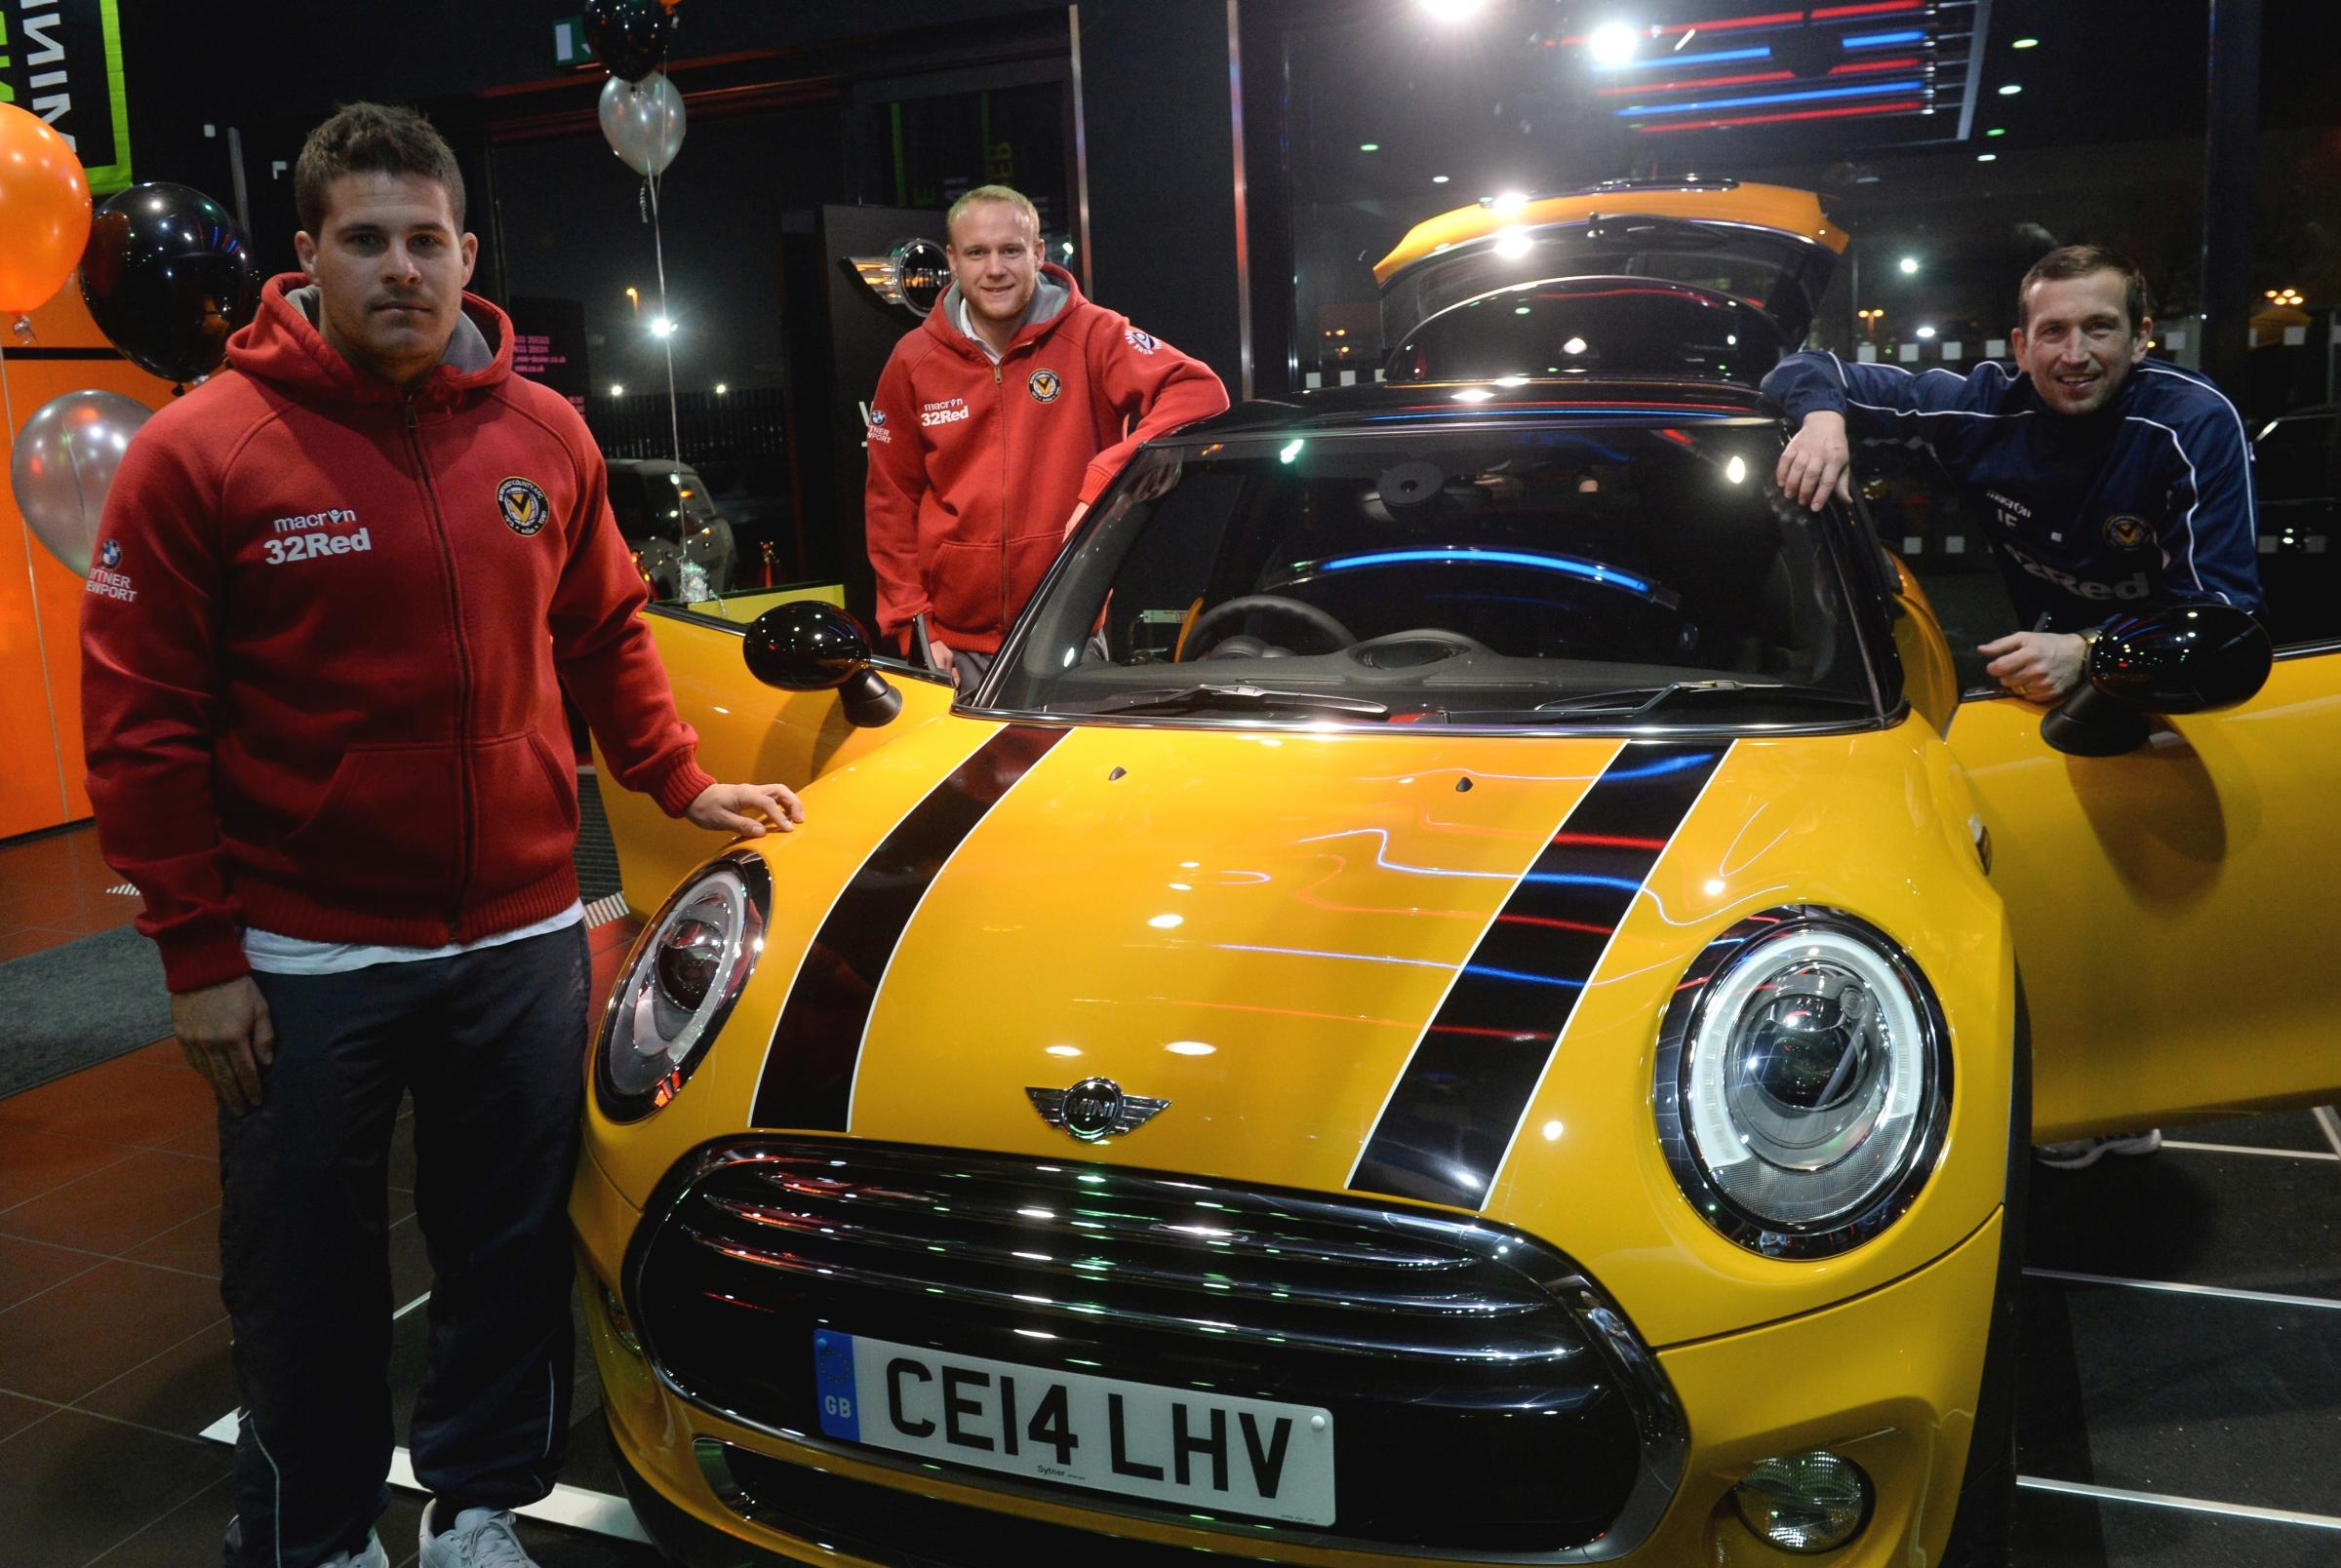 Newport County players and management at unveiling of the New Mini at the Sytner garage in Newport. County players Danny Crow and Lee Minshull along with manager Justin Edinburgh at the launch of the new Mini. (4609002)